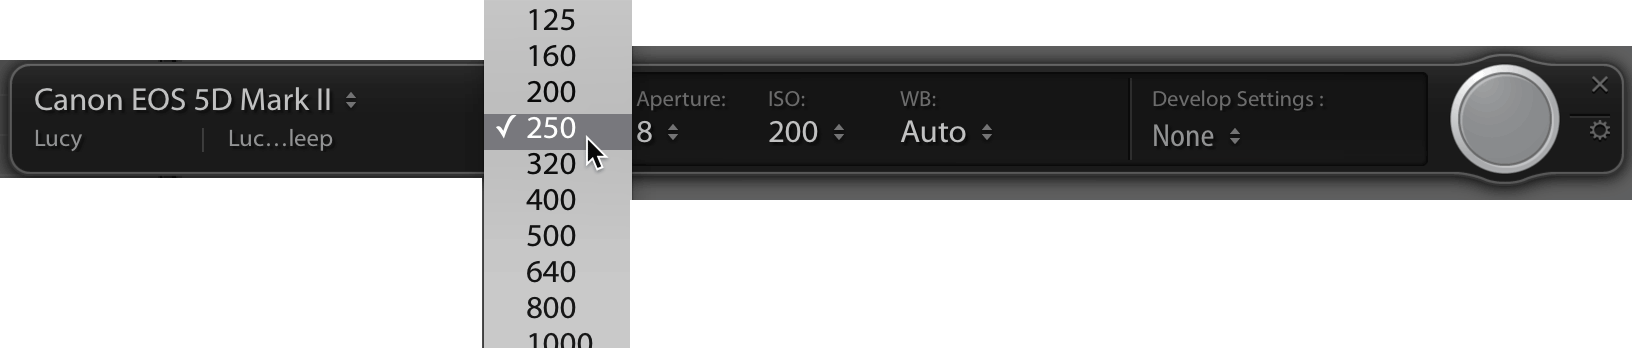 Lightroom Classic CC: Set tethered exposure and camera